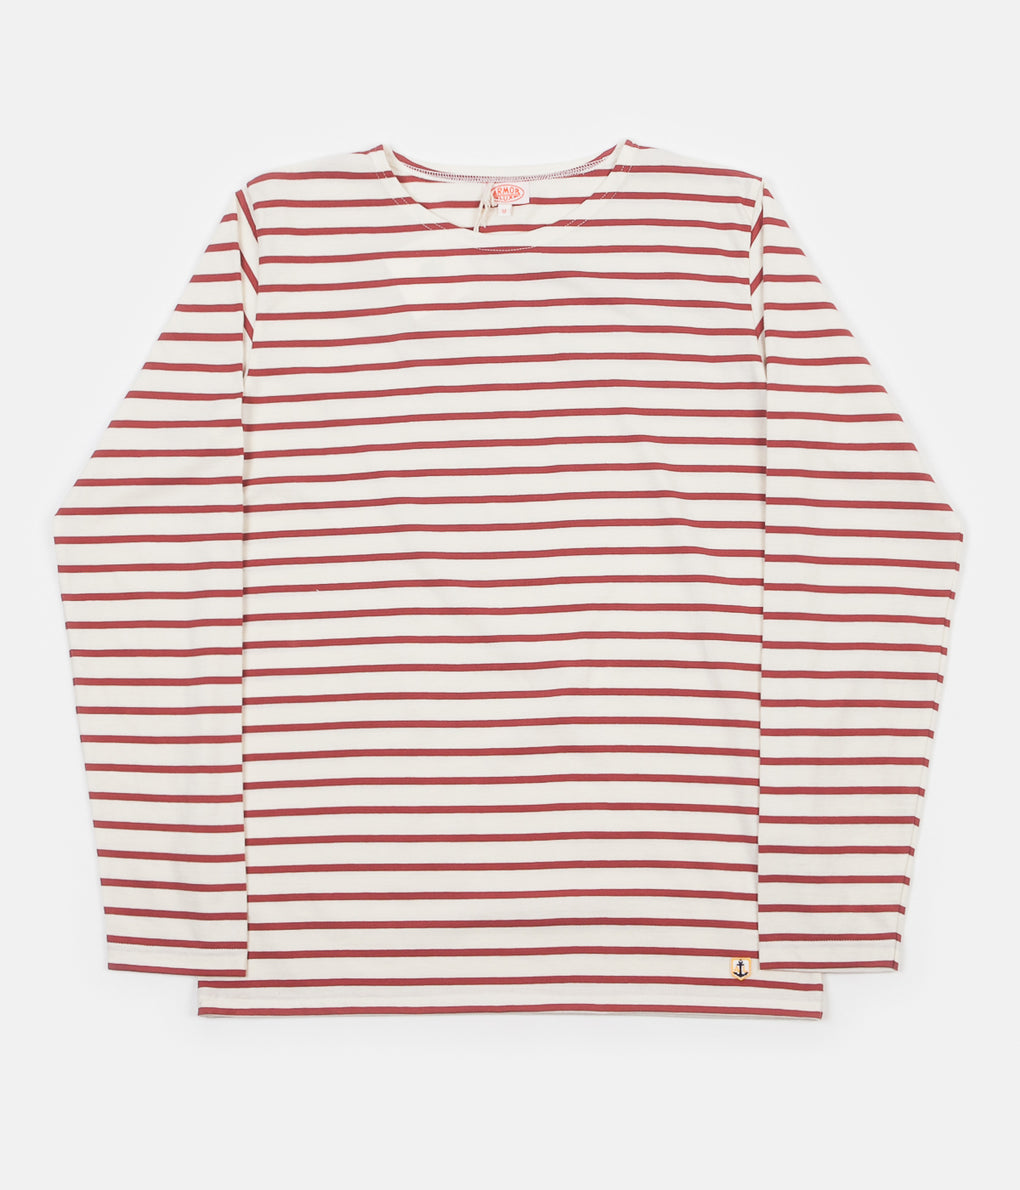 Armor Lux Breton Long Sleeve T-Shirt - Nature / Red Manganese